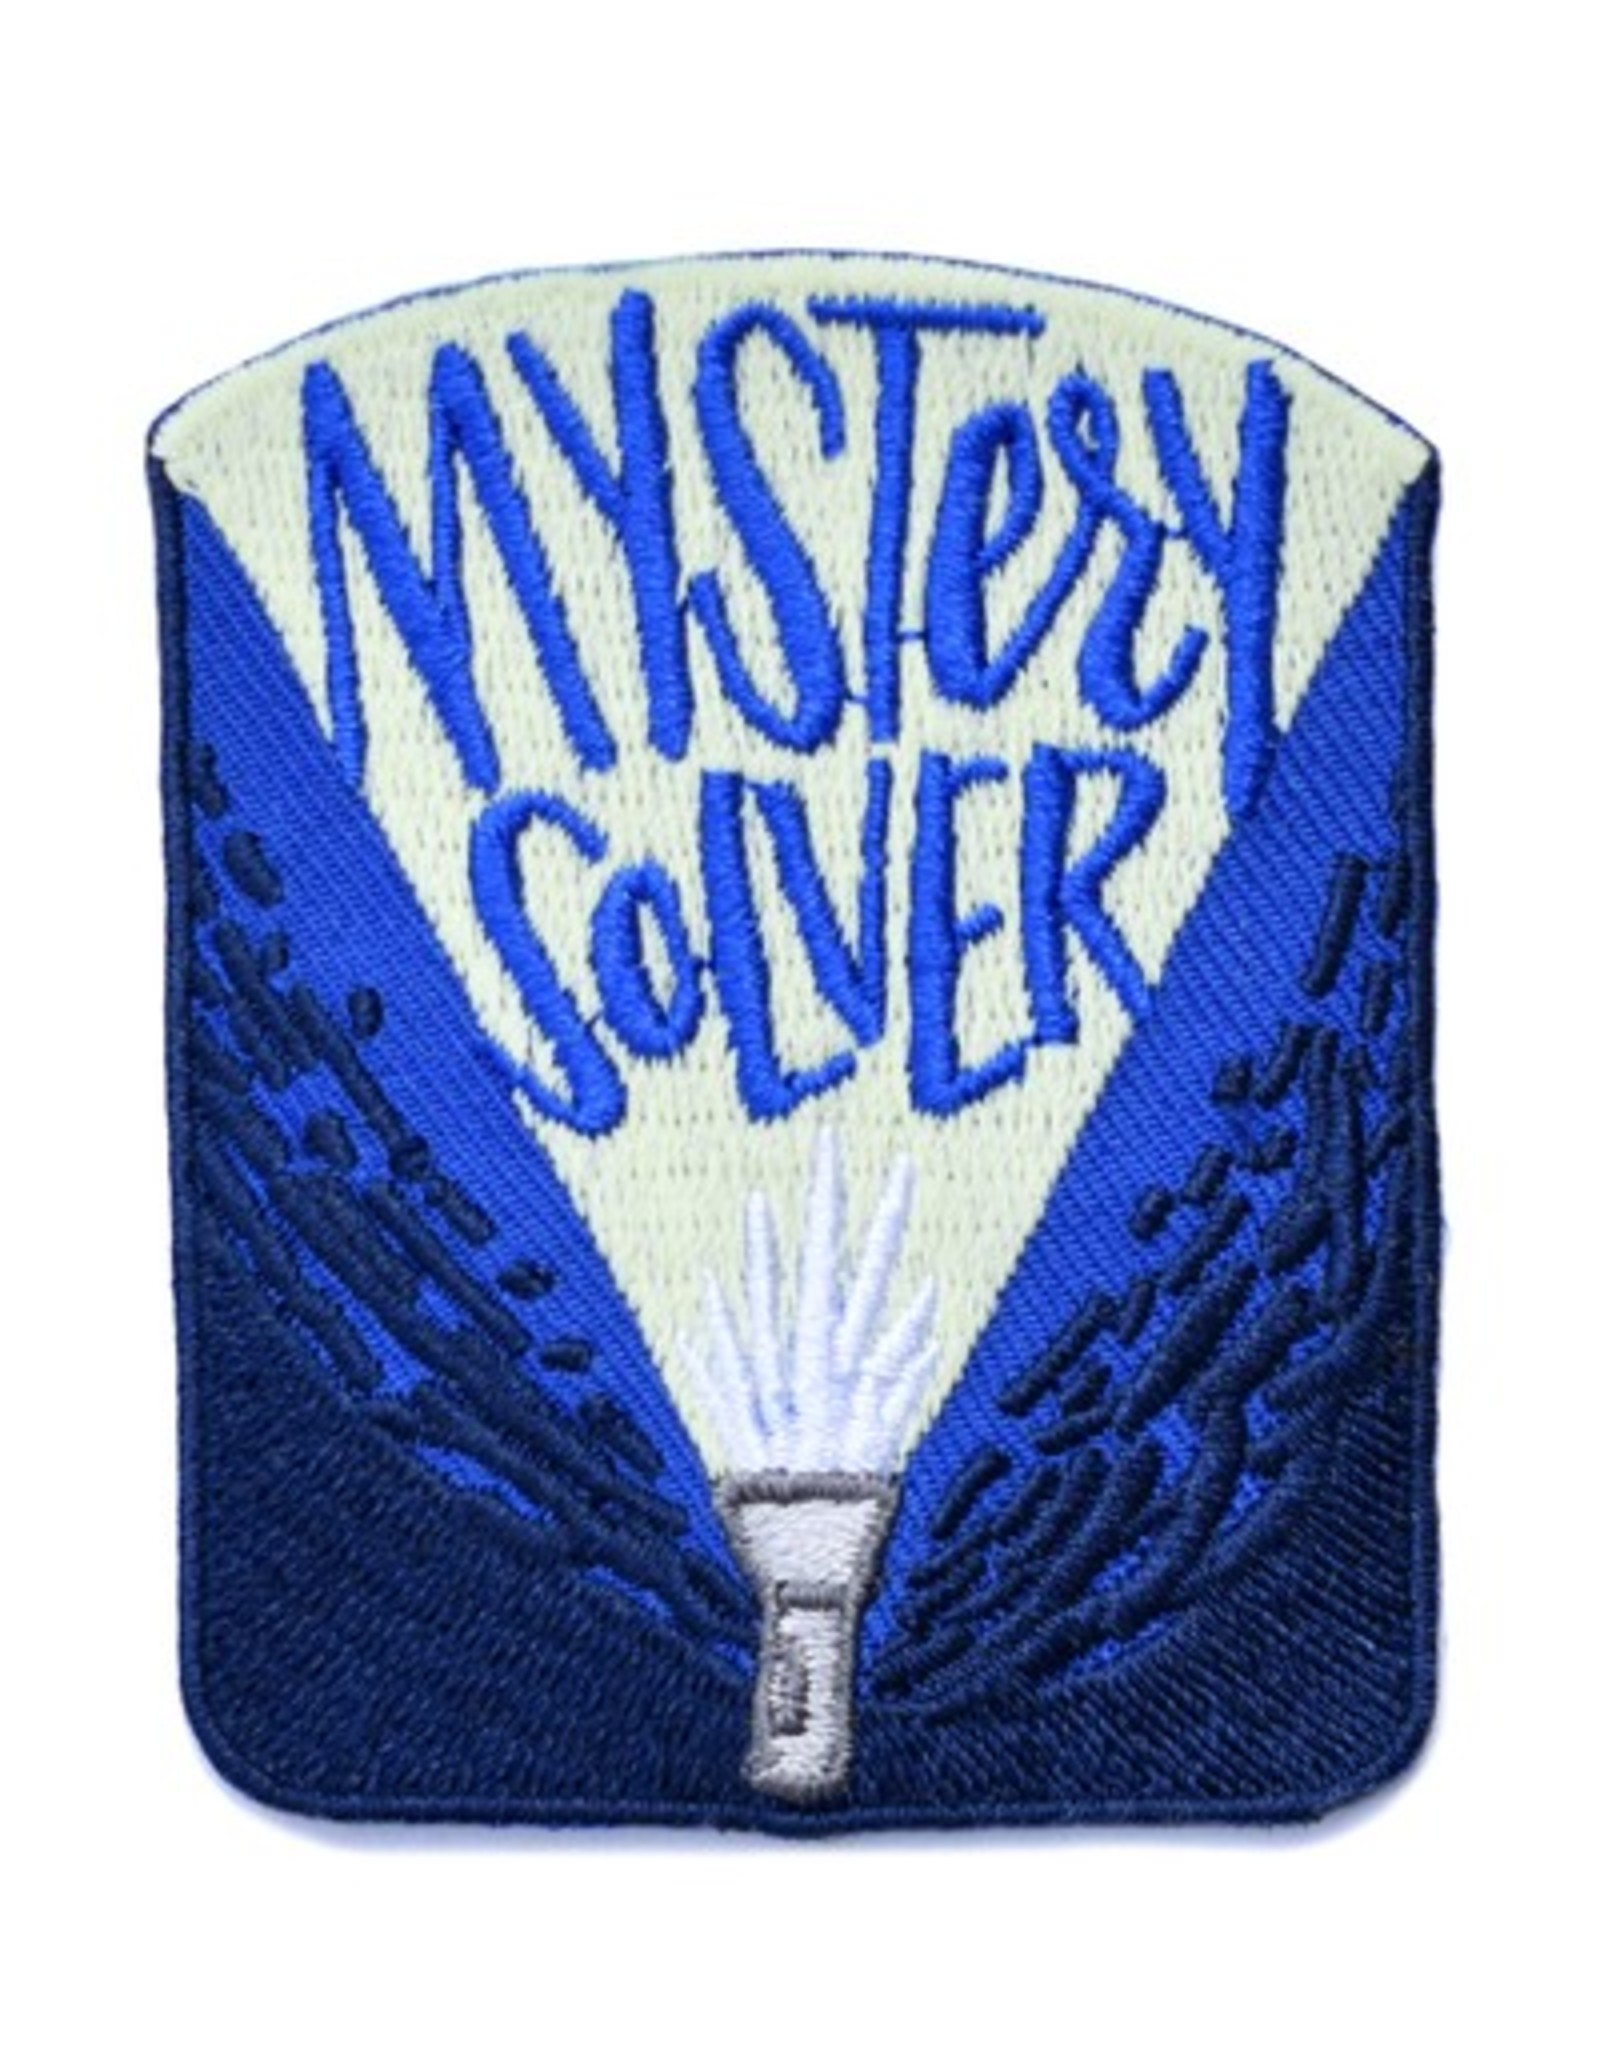 Mystery Solver Patch (Glow in the dark!)